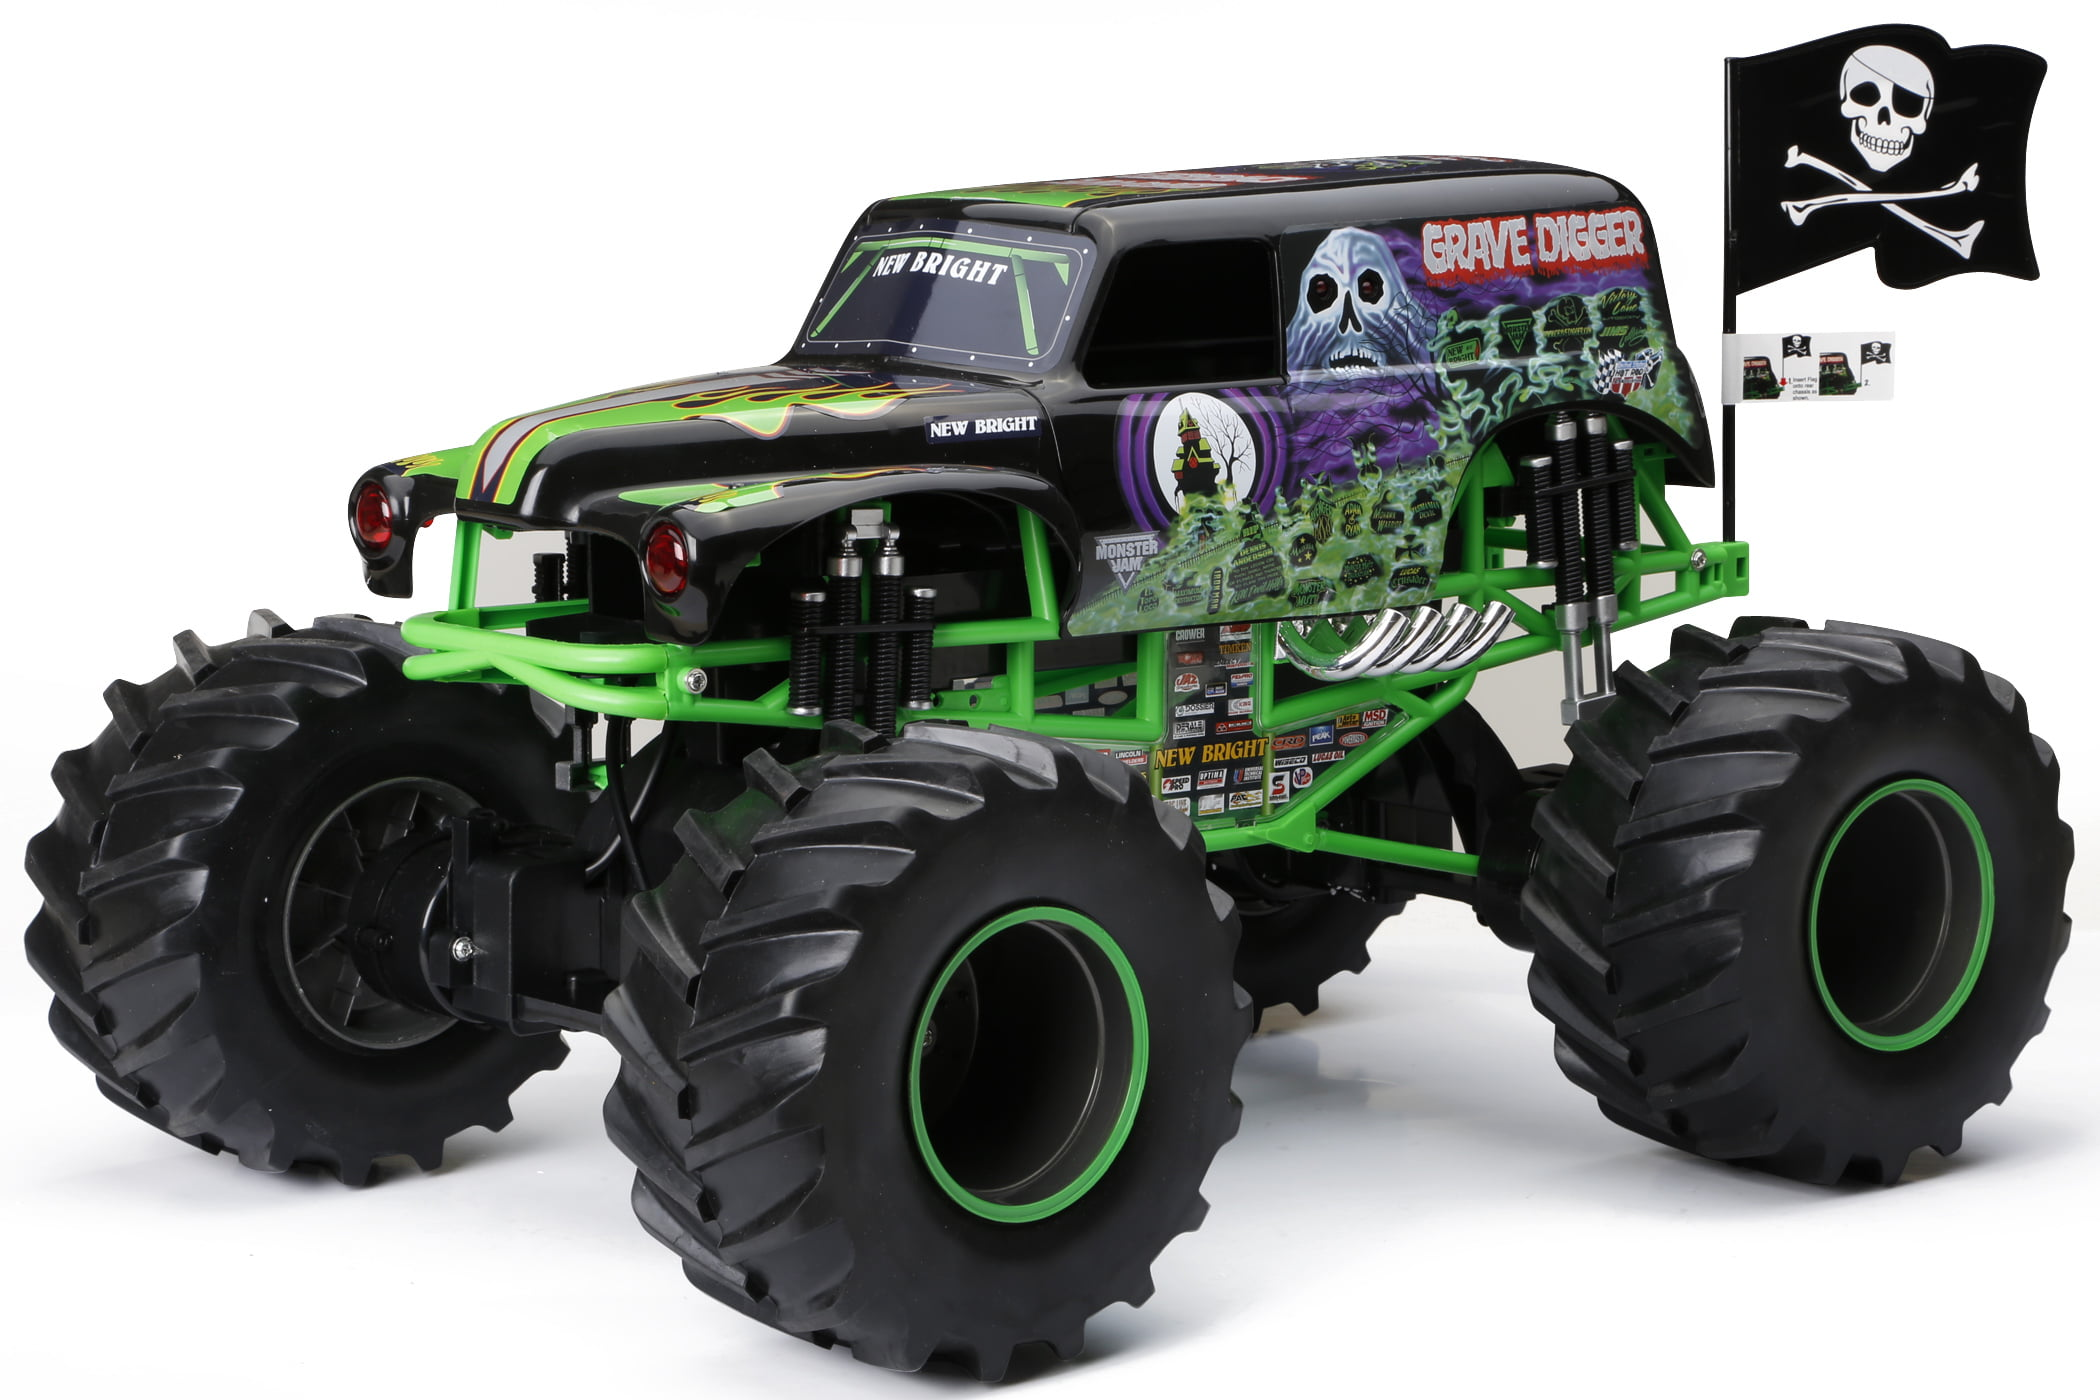 New Bright RC Monster Jam 1:8 Scale 4×4 Radio Control Truck Grave Digger by New Bright